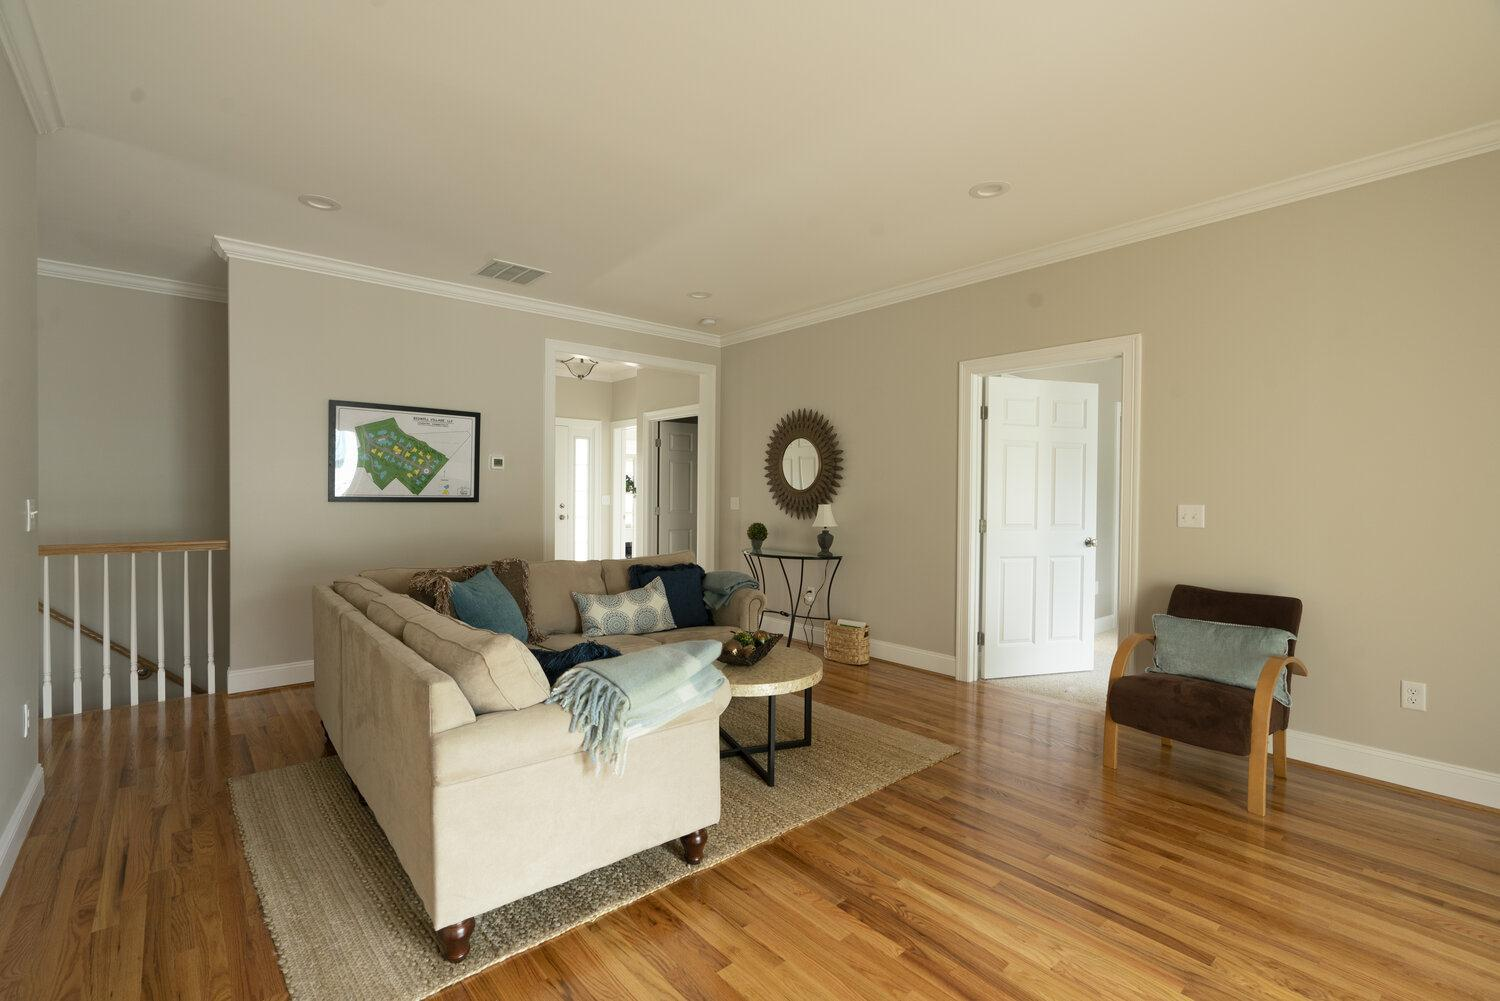 Living Area featured in The Cornwall By Bidwell Village in Hartford, CT